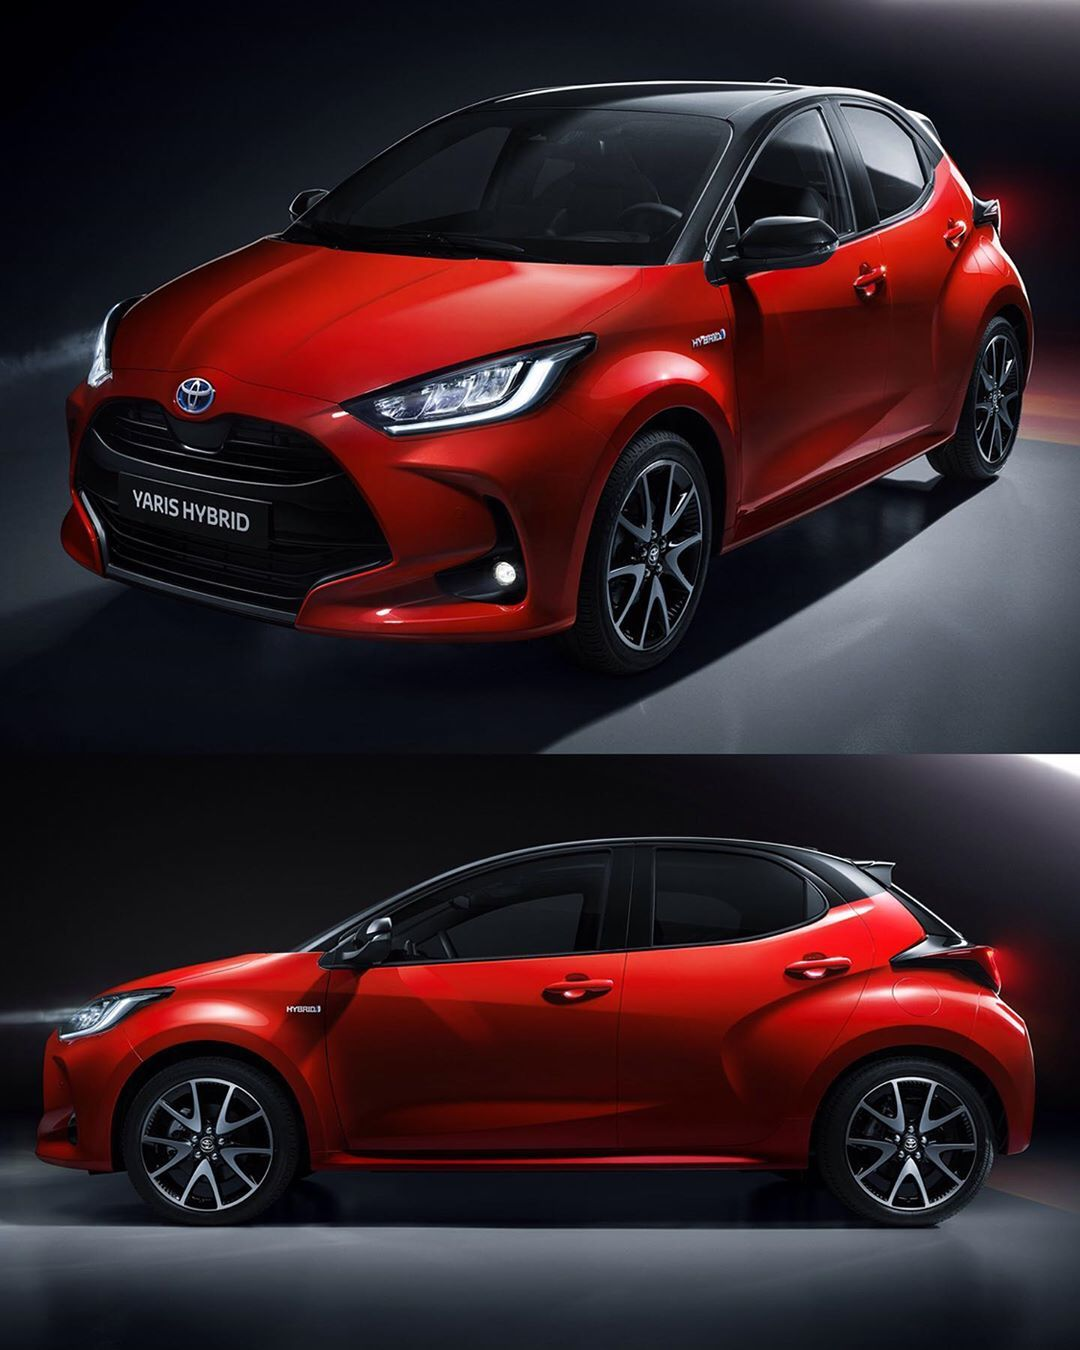 2020 Toyota Yaris Official Photos Cardesign Car Design Toyota Toyotayaris Toyotafans Toyotaclub In 2020 Design